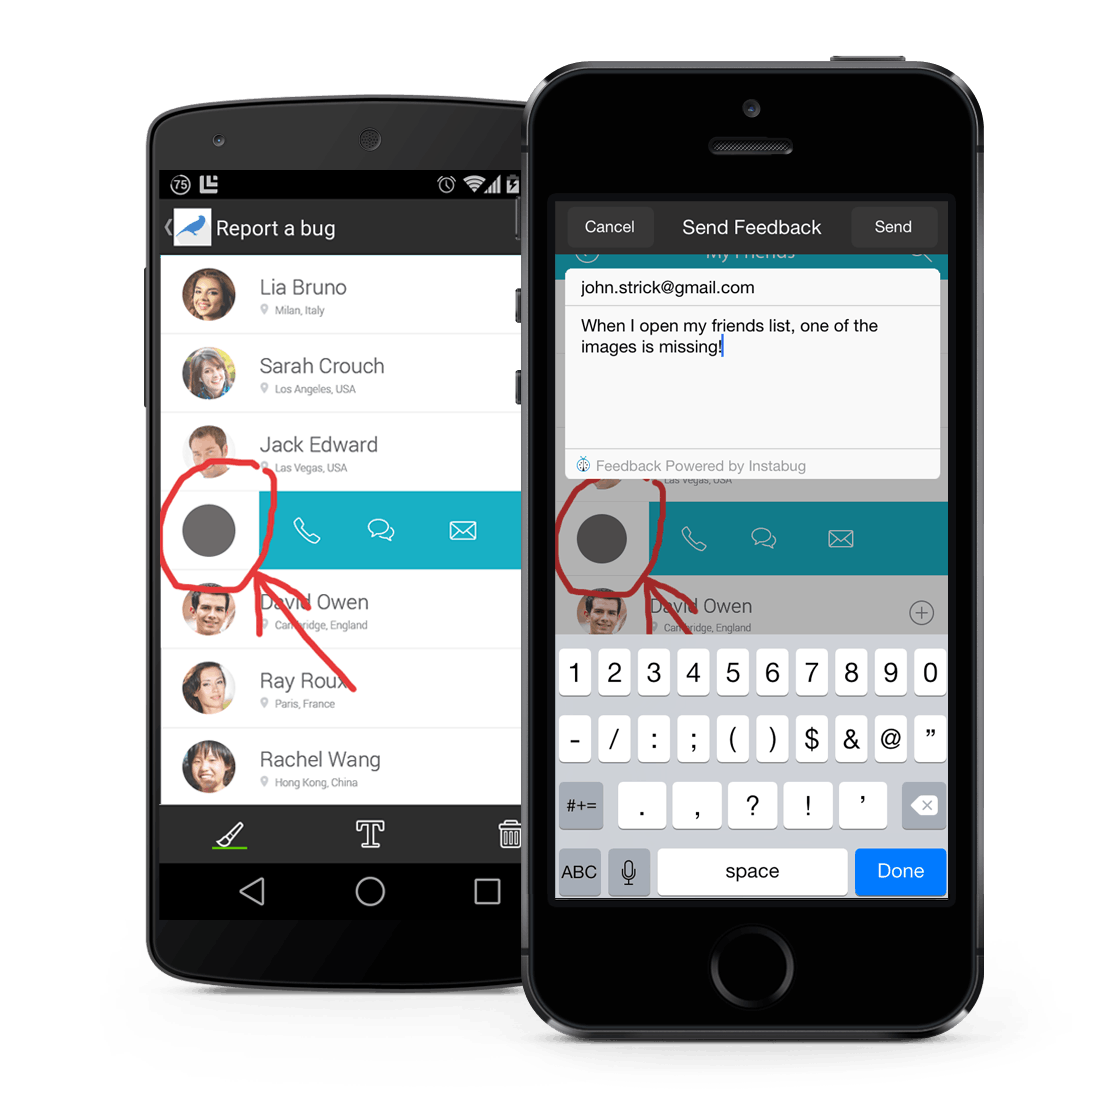 1. Report bugs and send feedback directly from your device